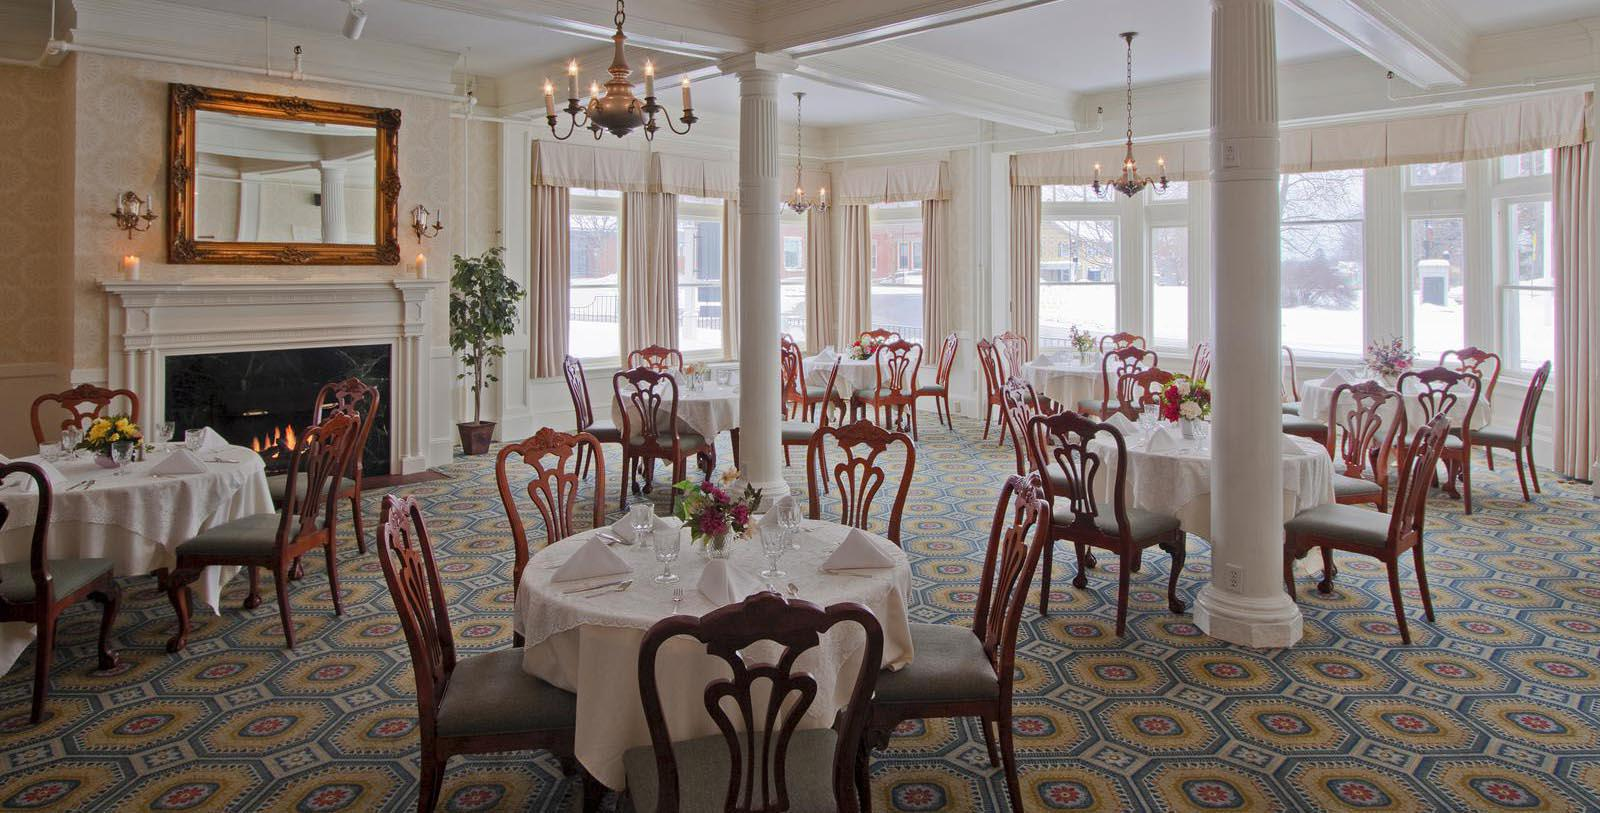 Image of Dining Room at Morgan's Tavern at The Middlebury Inn, 1827, Member of Historic Hotels of America, in Middlebury, Vermont, Taste